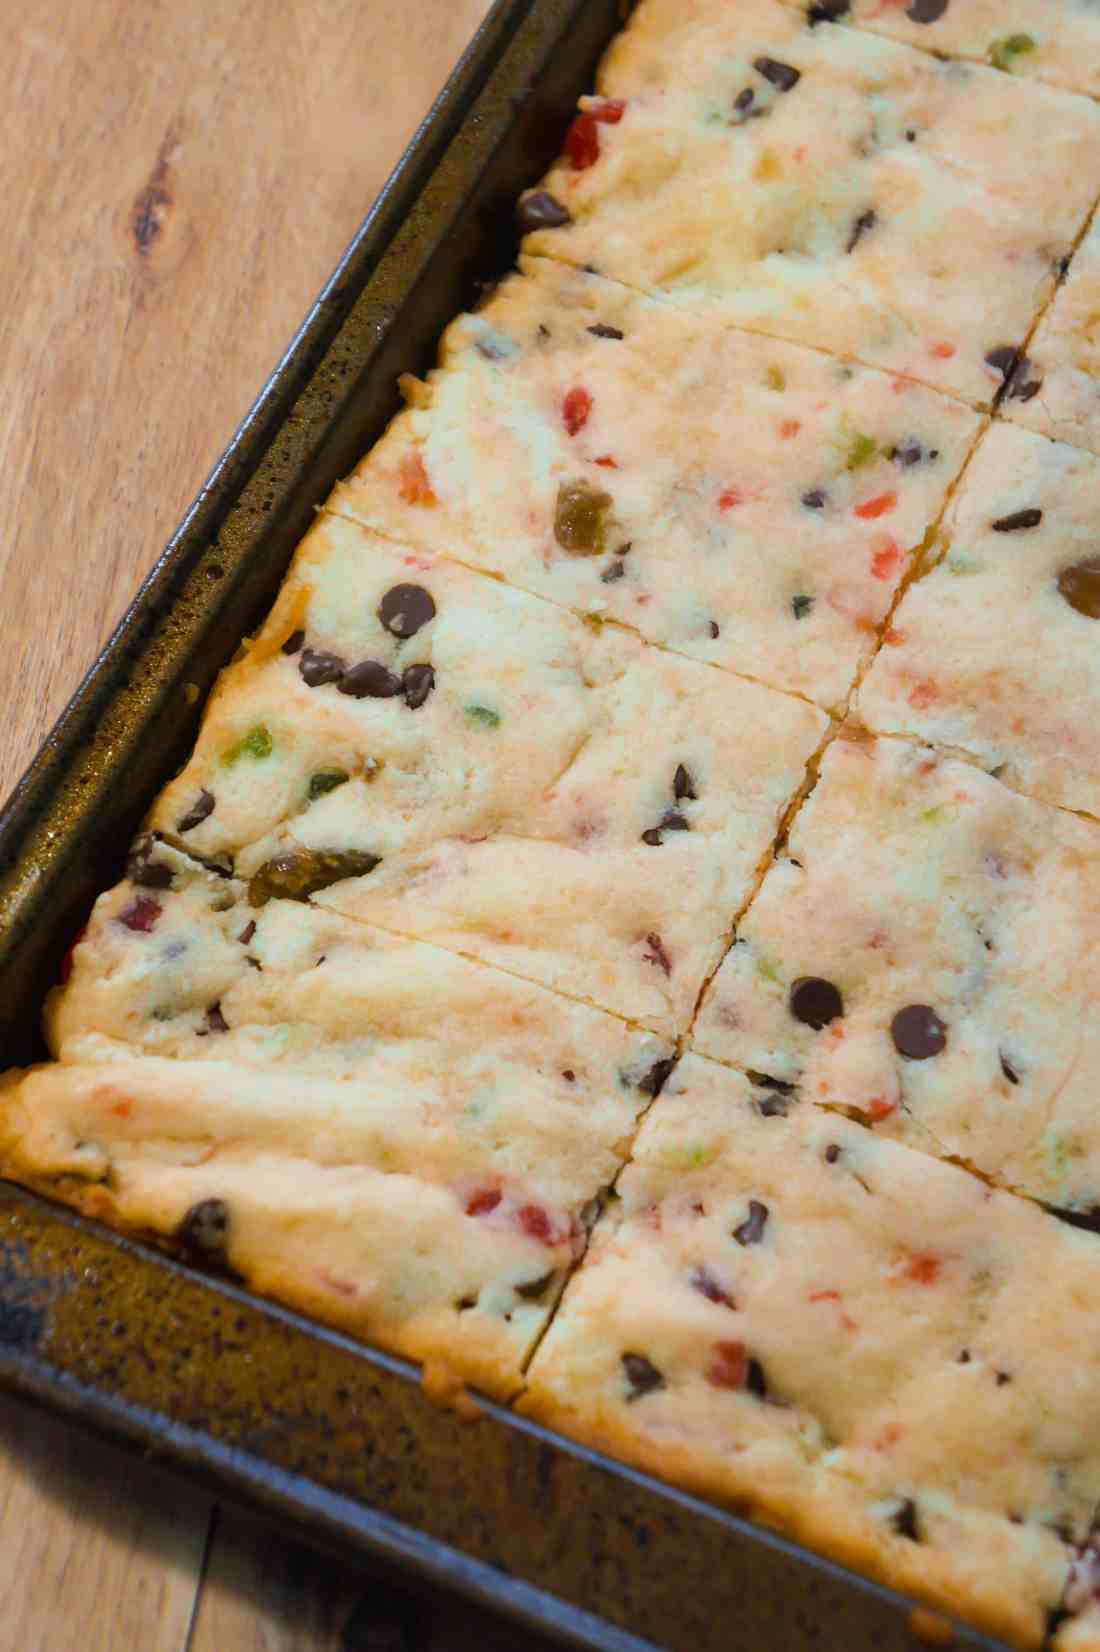 Pan of cherry shortbread cookie bars